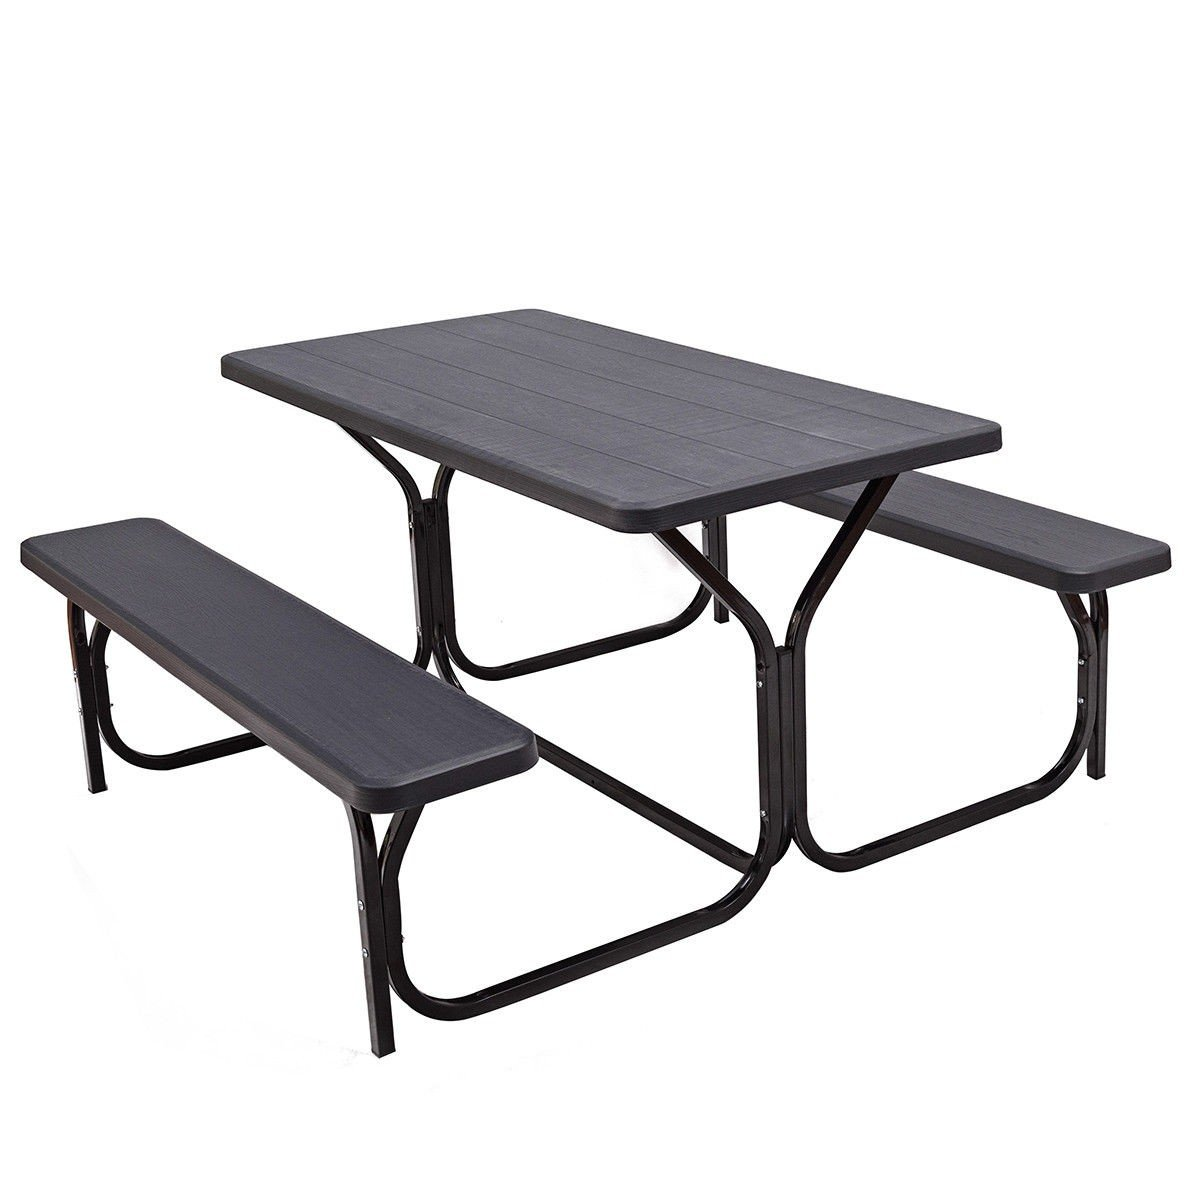 Custpromo Picnic Table and Bench Set All Weather Resistant Steel Frame Wood-Like Texture Outdoor Dining Garden Patio Camping Tables (Black) by Custpromo